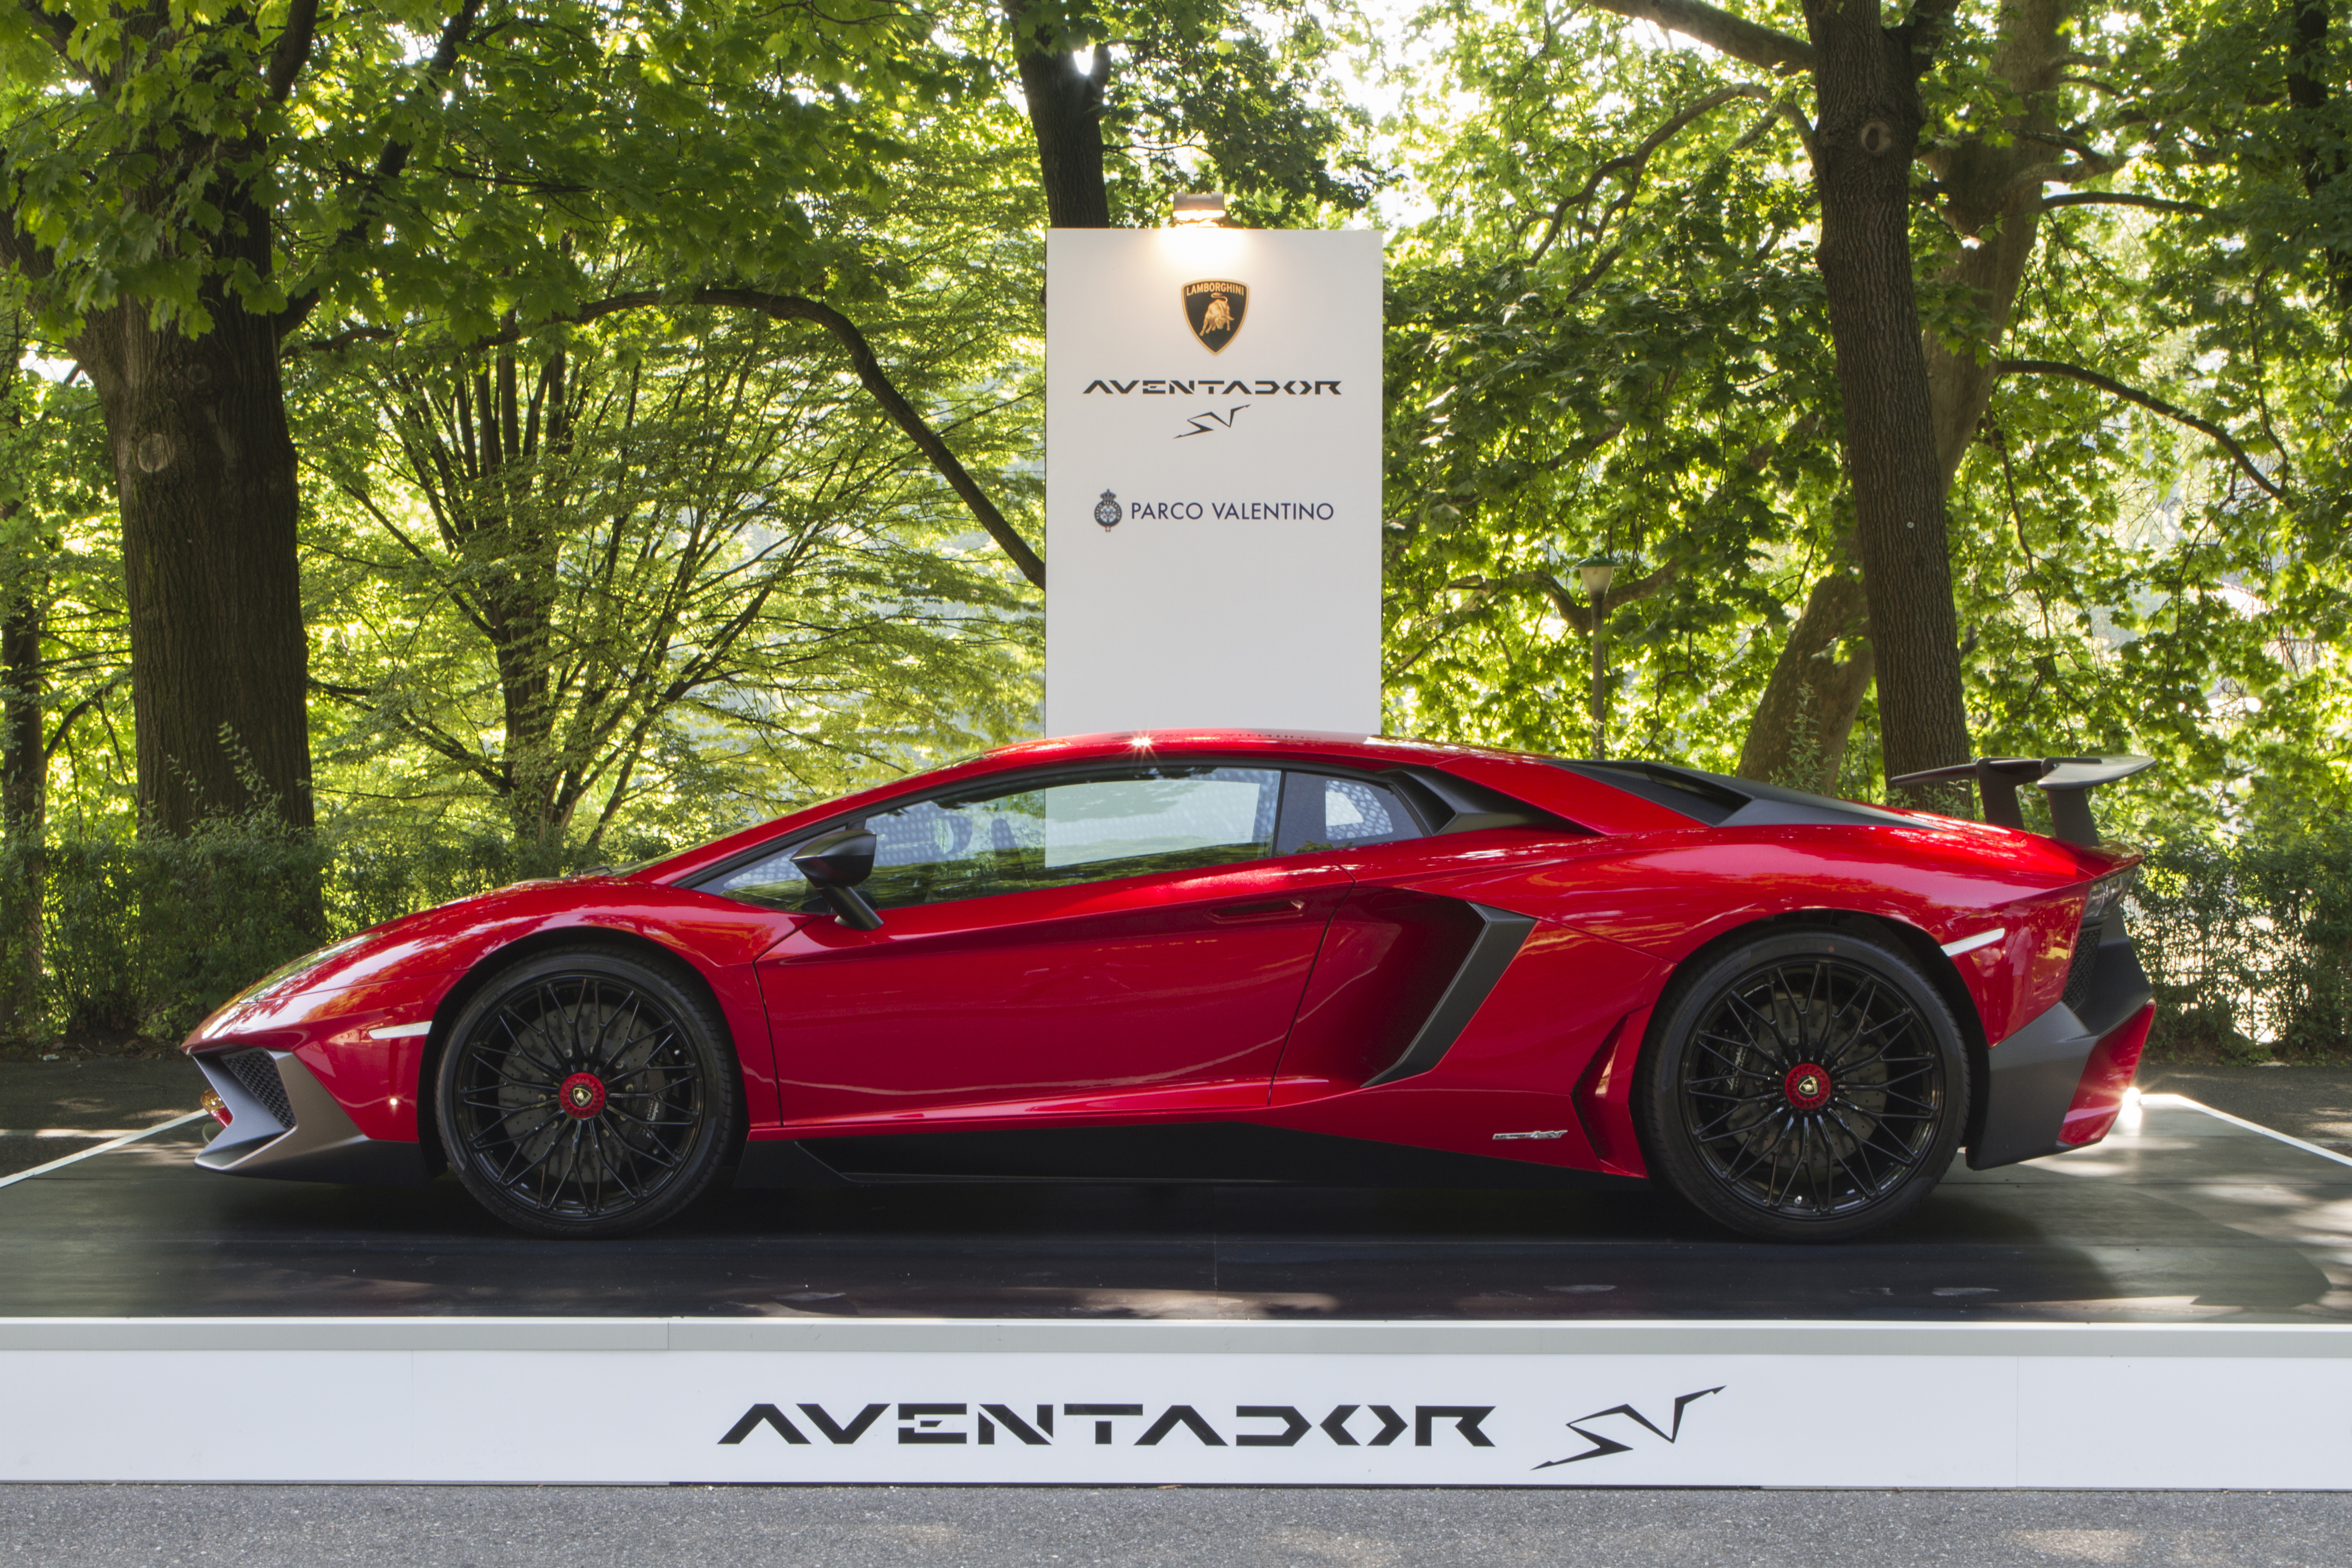 Side view of Lamborgini Aventador. Parco Valentino car show